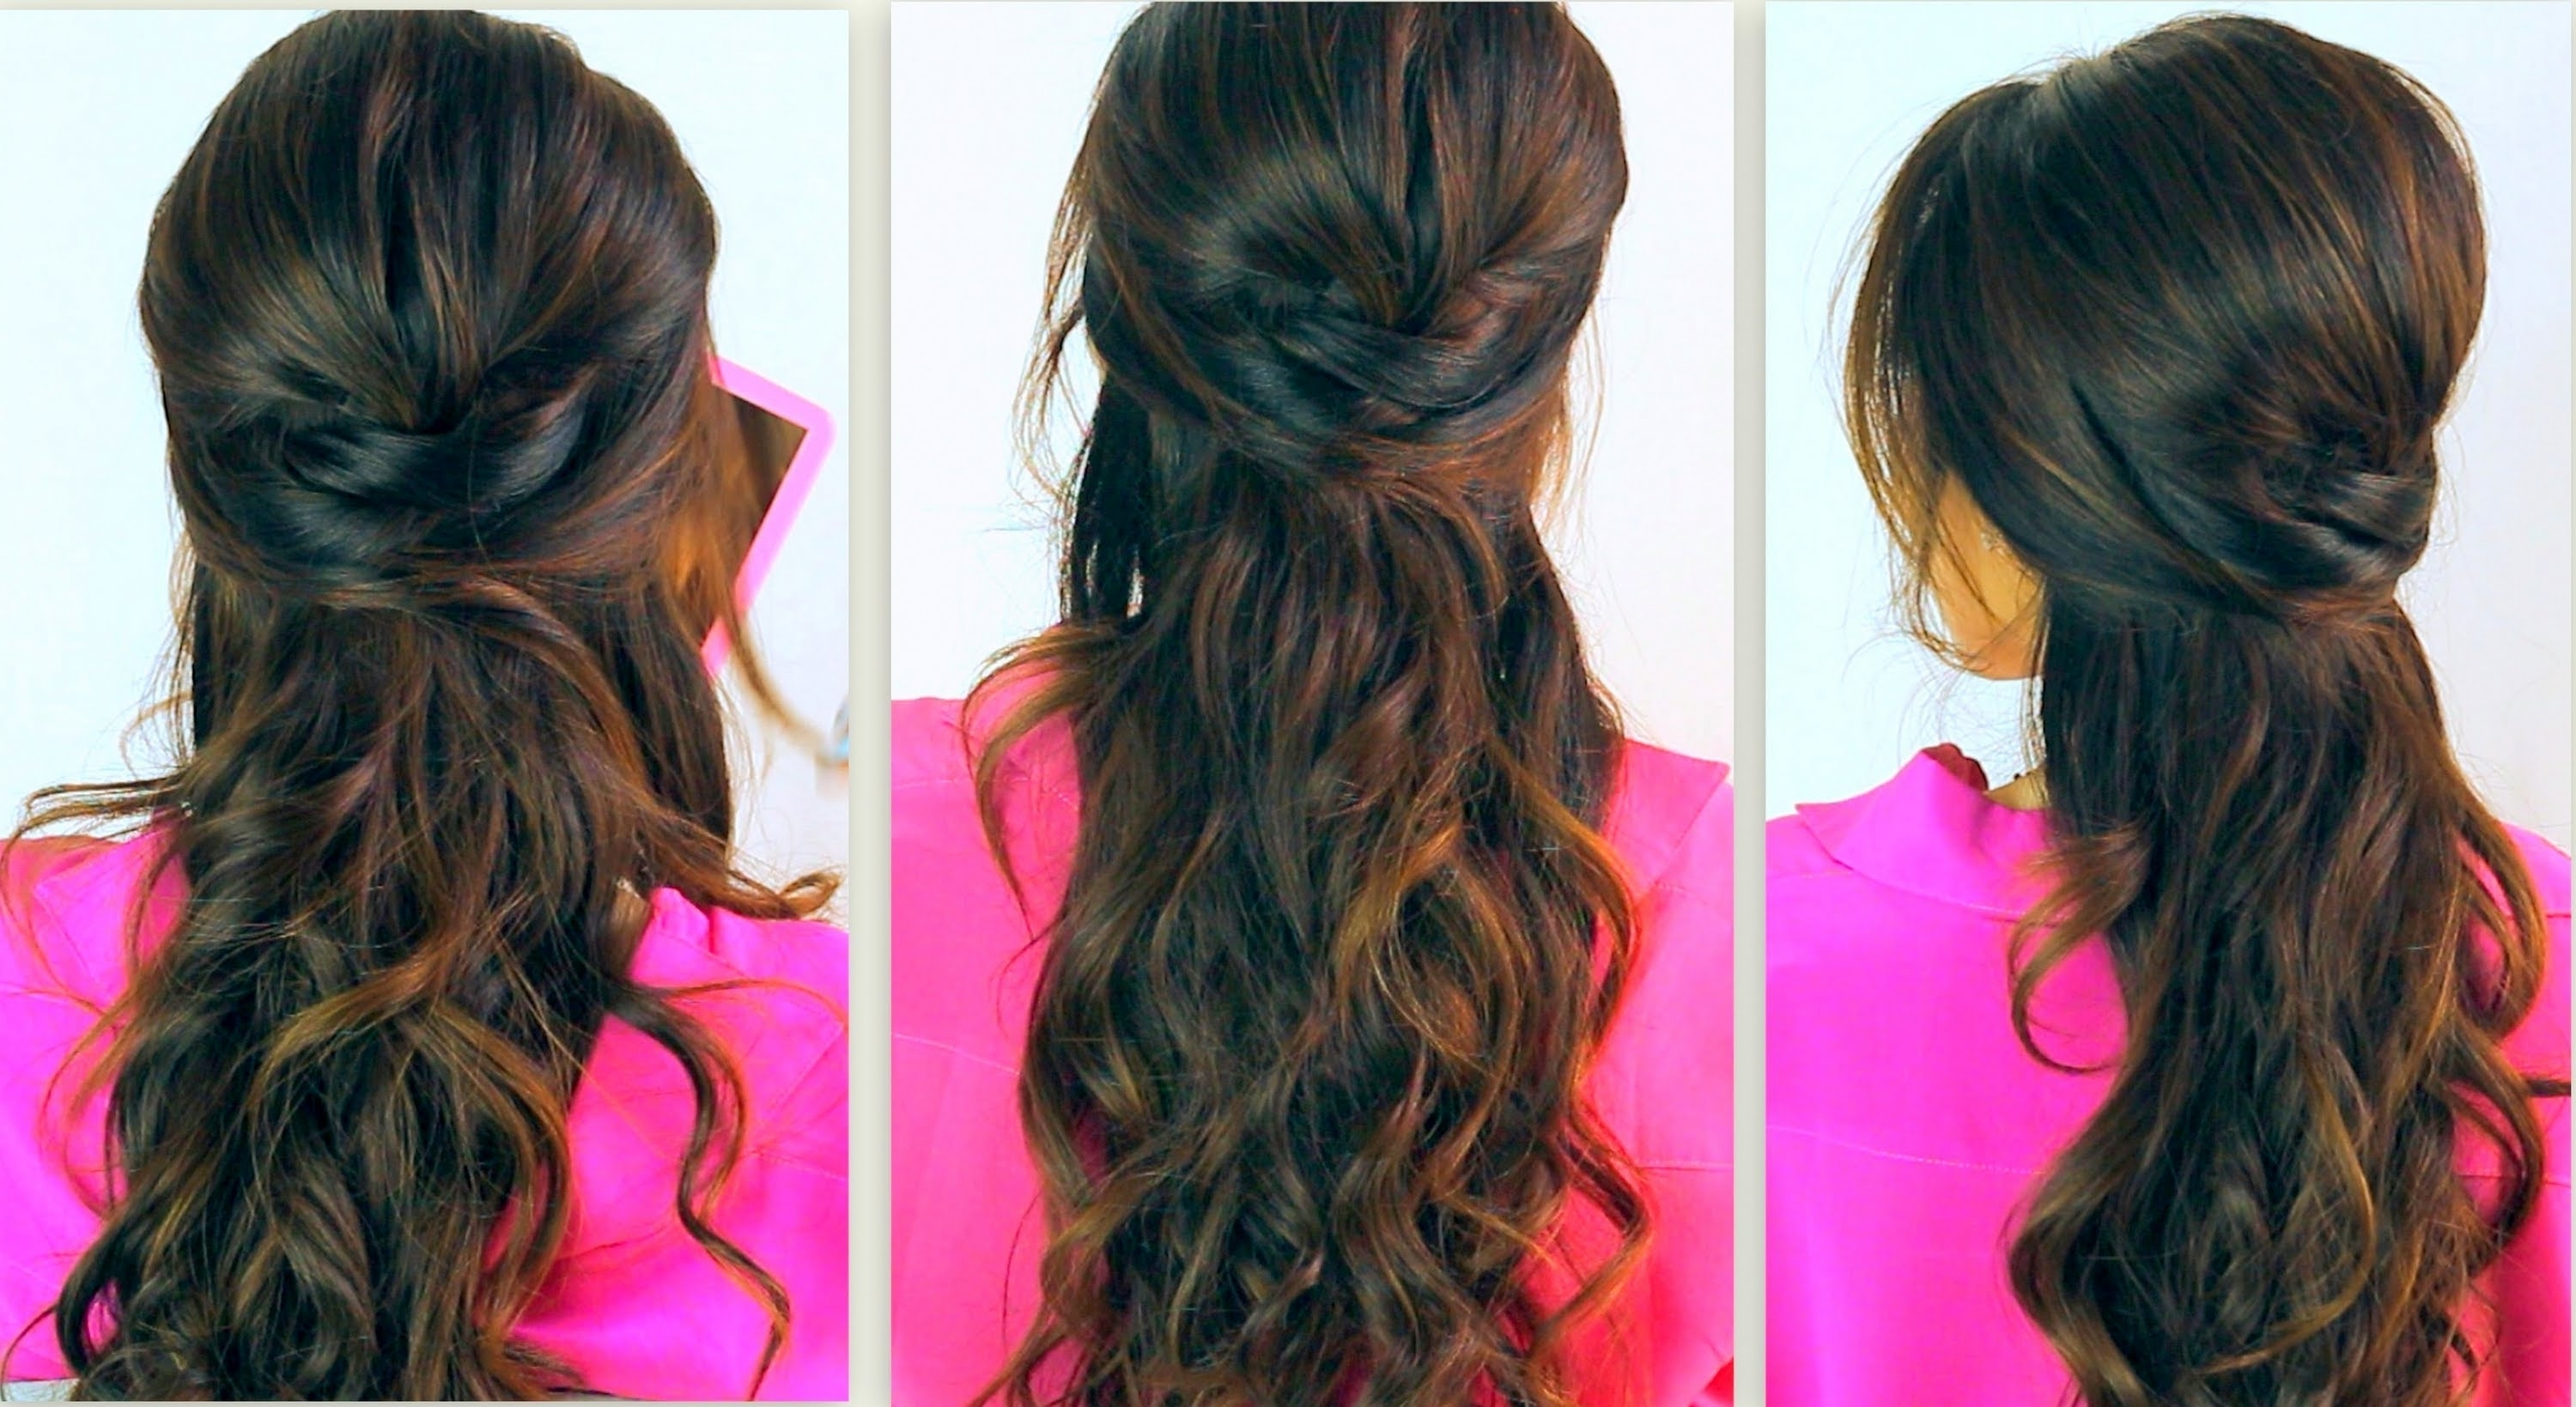 ☆ Cute Back To School Hairstyles | Everyday Prom Curly Half Up With Regard To Curly Half Updo Hairstyles (View 8 of 15)